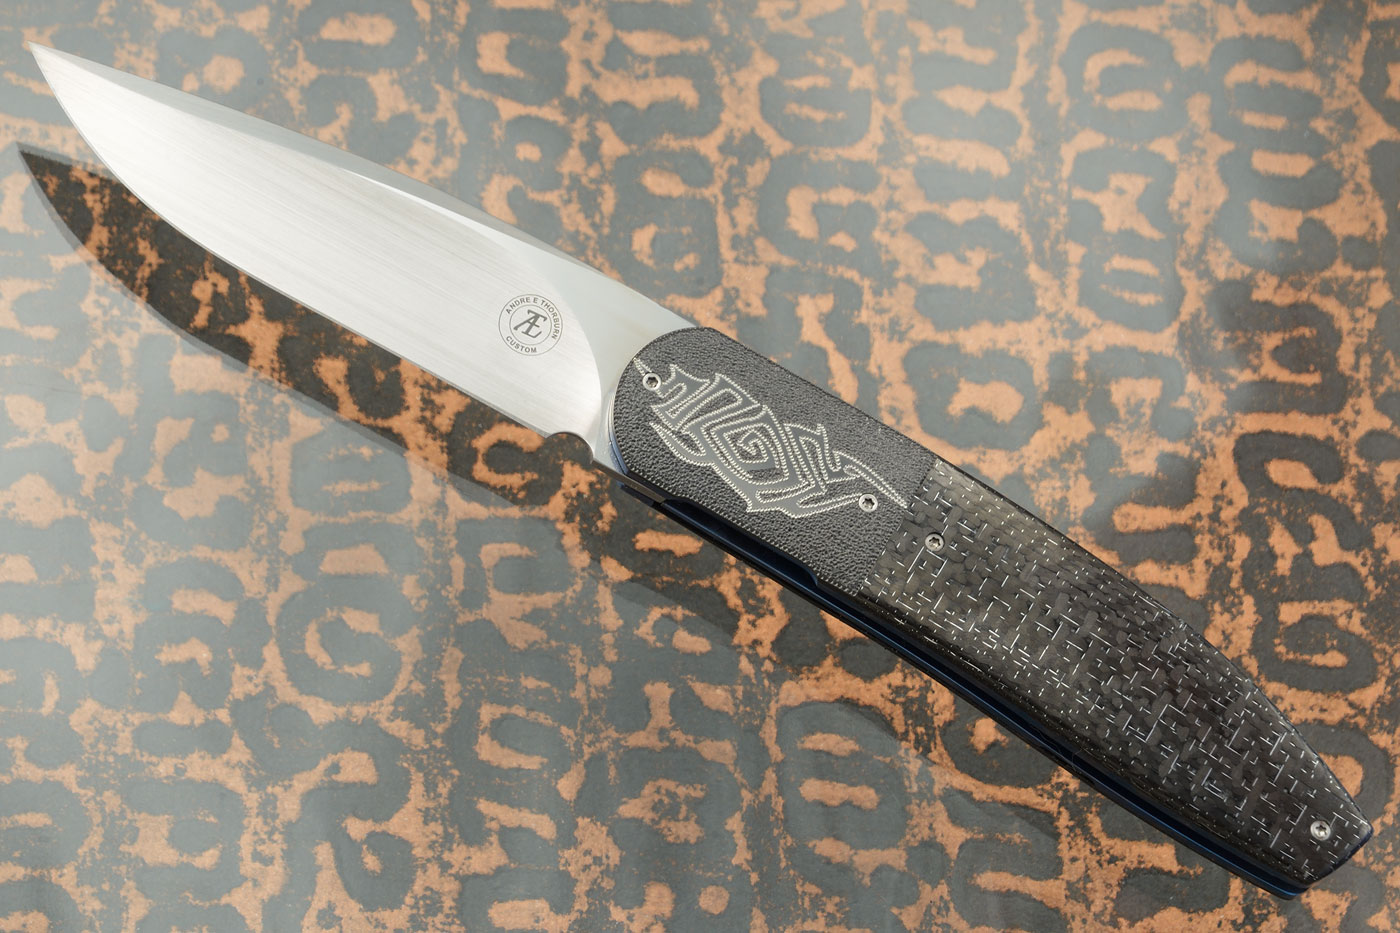 L28 Front Flipper with Silver Strike Carbon Fiber and Zirconium (Ceramic IKBS) - M390